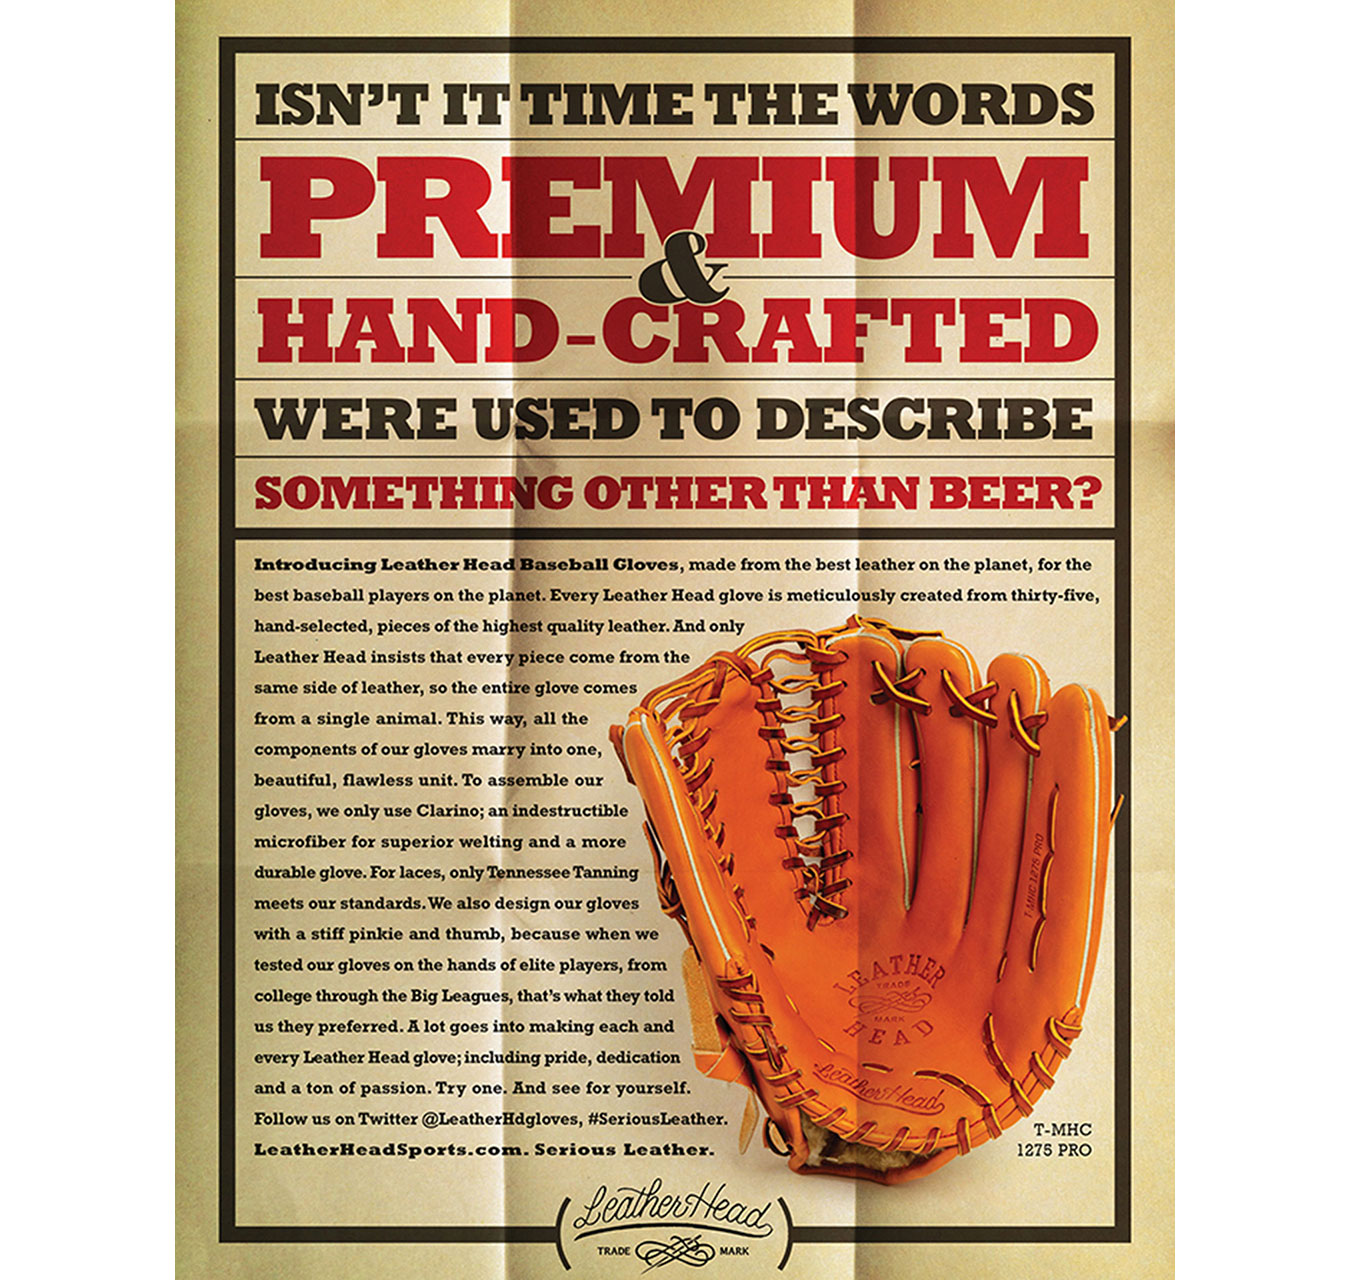 Marketing collateral for premium Leather Head baseball gloves